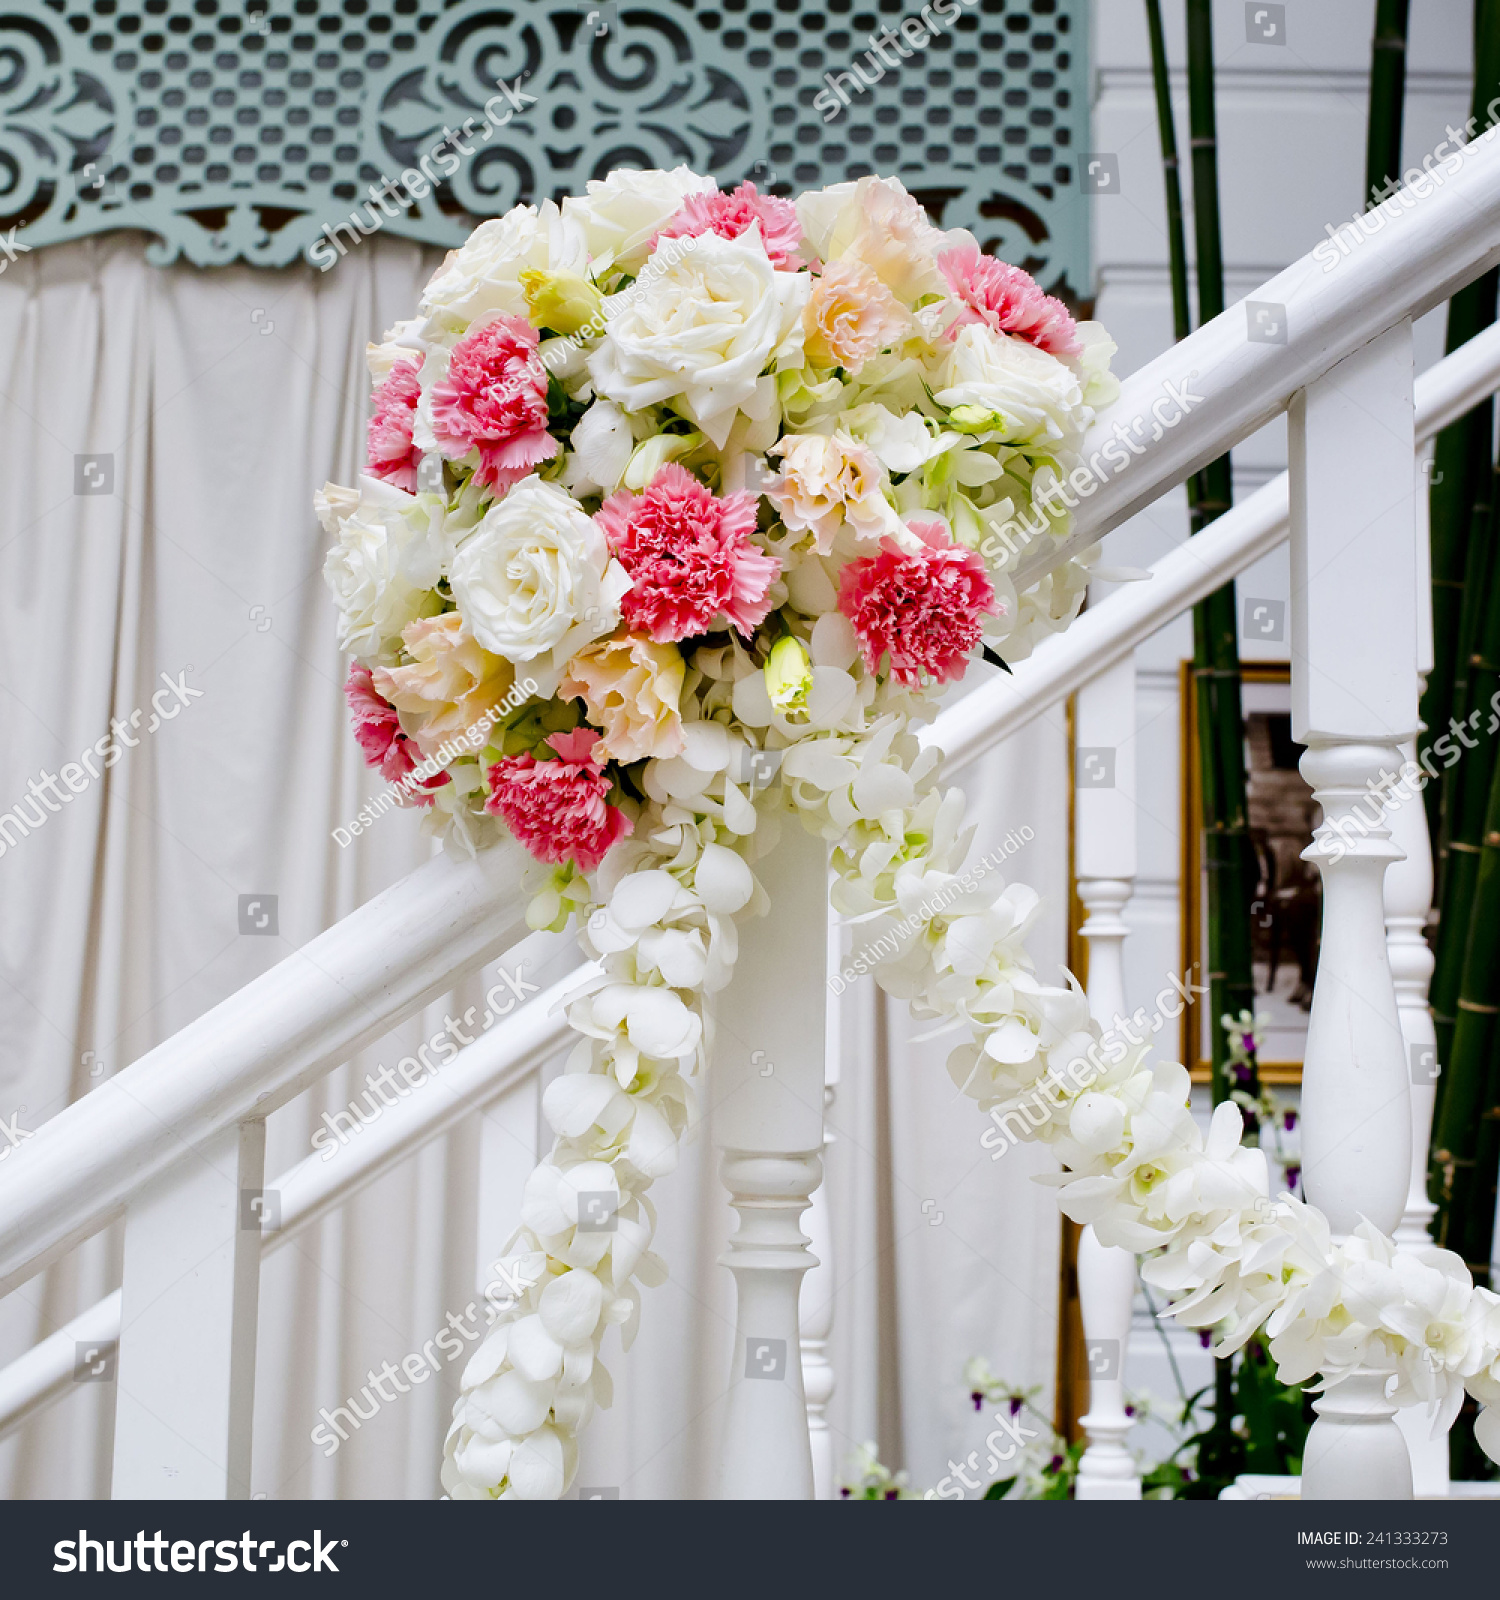 mason jar floral romantic reception wedding flowers, wedding decor, wedding flower centerpiece, wedding flower arrangement, add pic source on comment and we will update it. can create this beautiful wedding flower Arrangement. Find this Pin and more on Florals for .